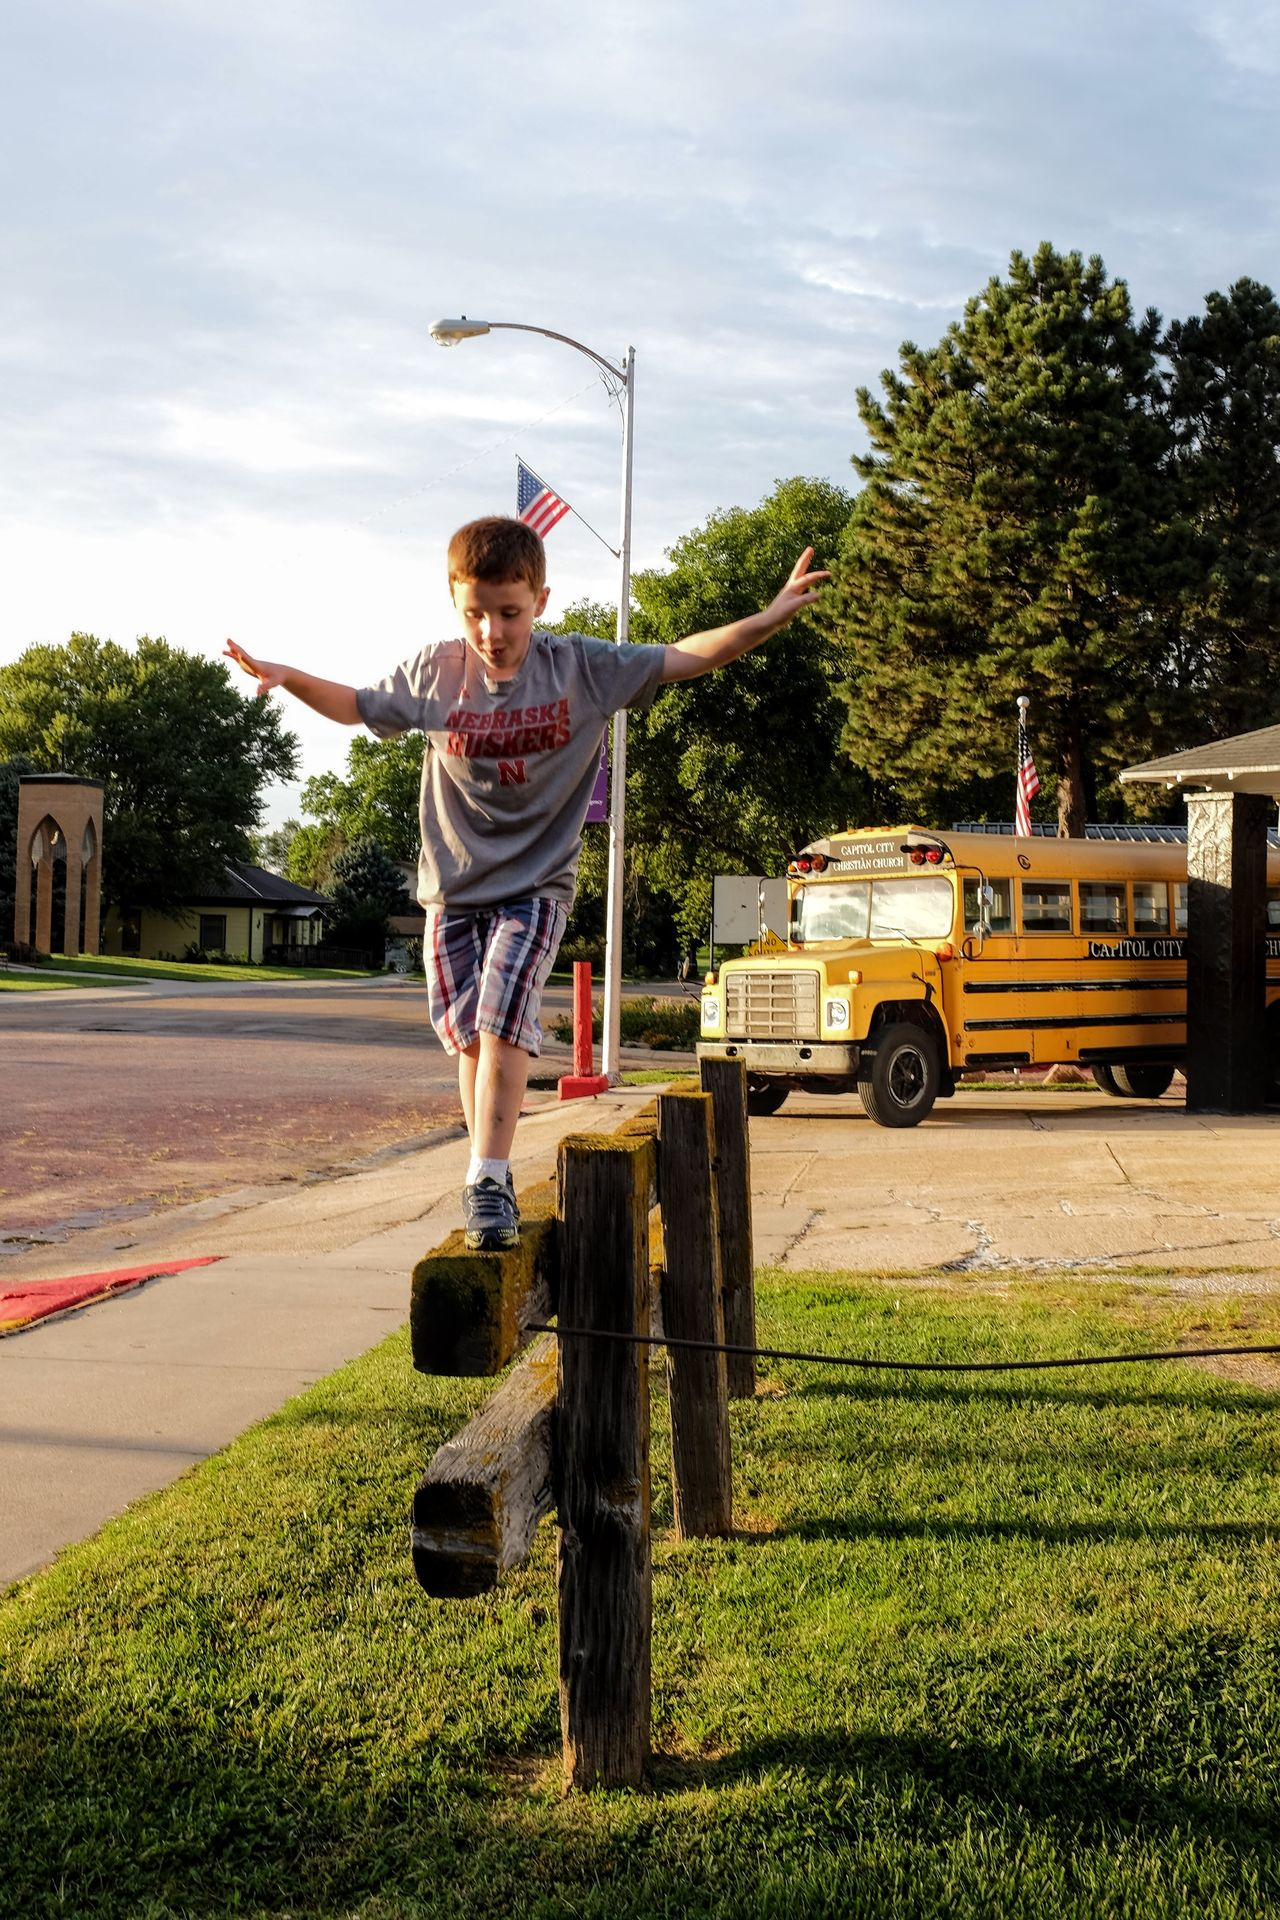 Photo essay, a day in the life. August 24, 2016 Milligan Nebraska 35mm Camera A Day In The Life Americans Balance Balancing Act Camera Work Carefree Childhood Composition Elementary Age Evening Light Everyday Lives Eye For Photography EyeEm Best Shots EyeEm Gallery Eyeemphoto Fine Art Photography FujiX100S Full Length Gesture Golden Hour Outdoors Photo Essay Small Town Stories Storytelling